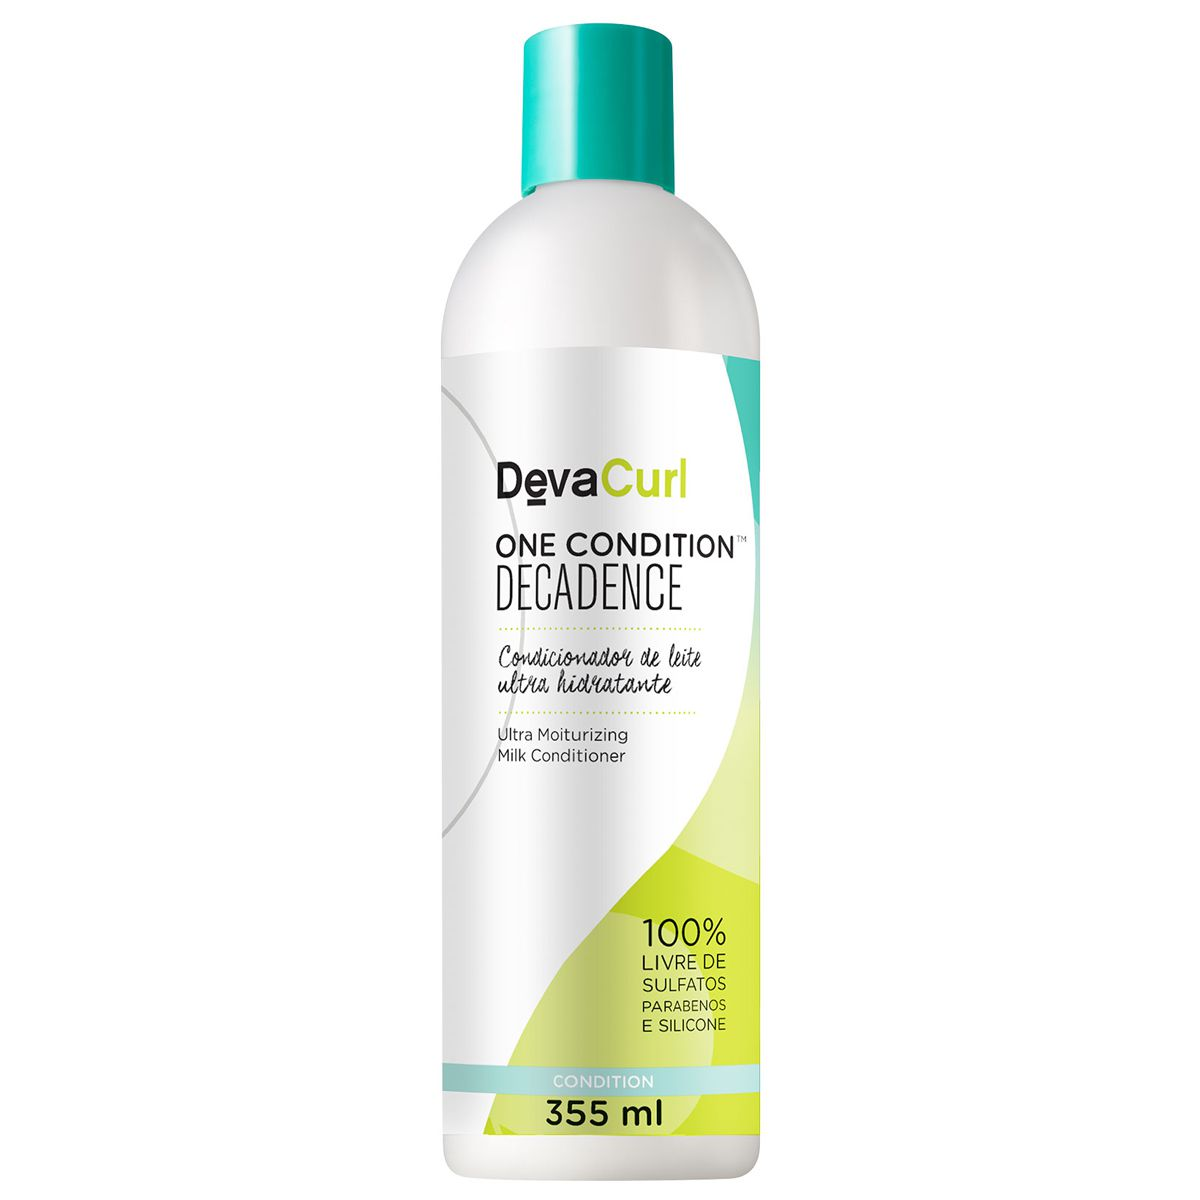 One Condition Decadence - 355ml - DevaCurl